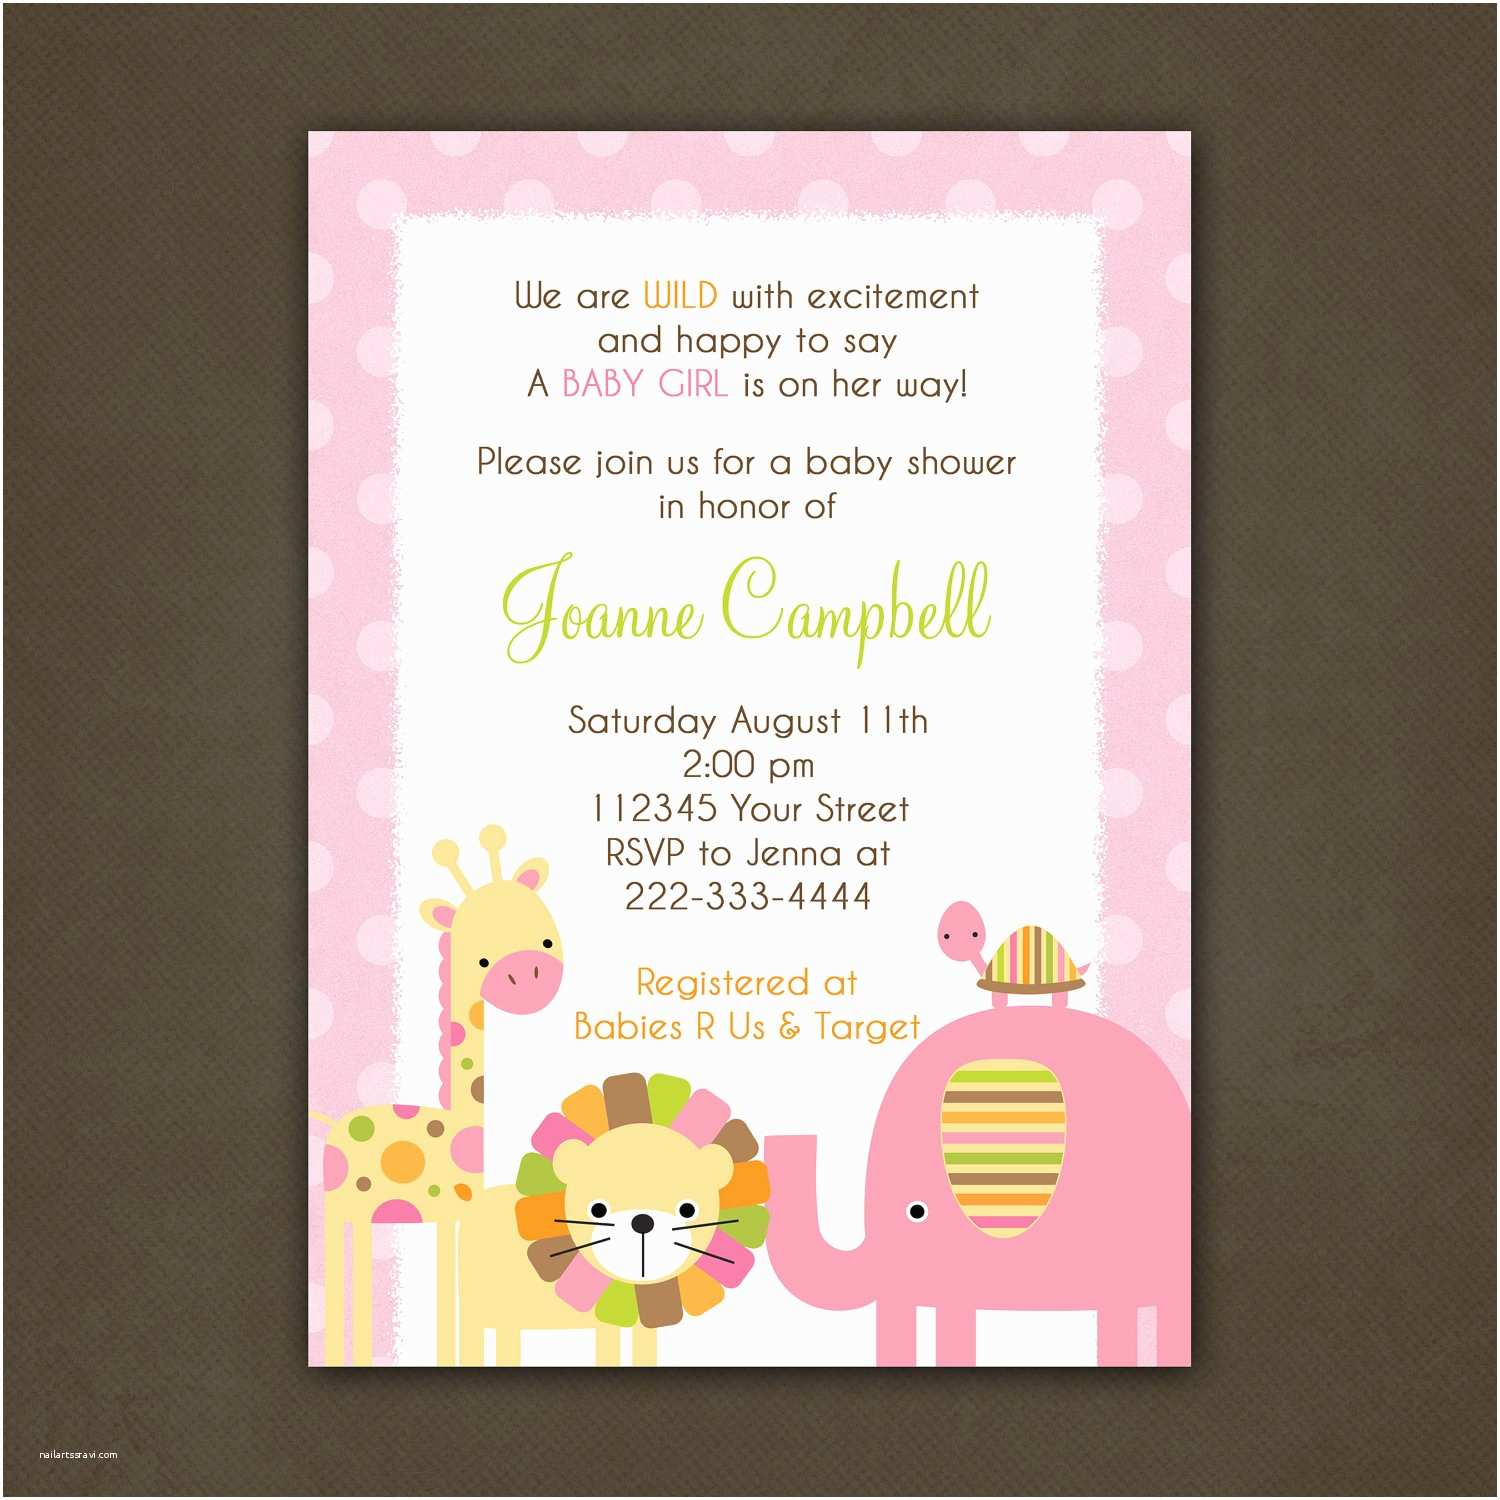 Best Baby Shower Invitations Popular Ideas for Baby Shower Invitation top Baby Shower